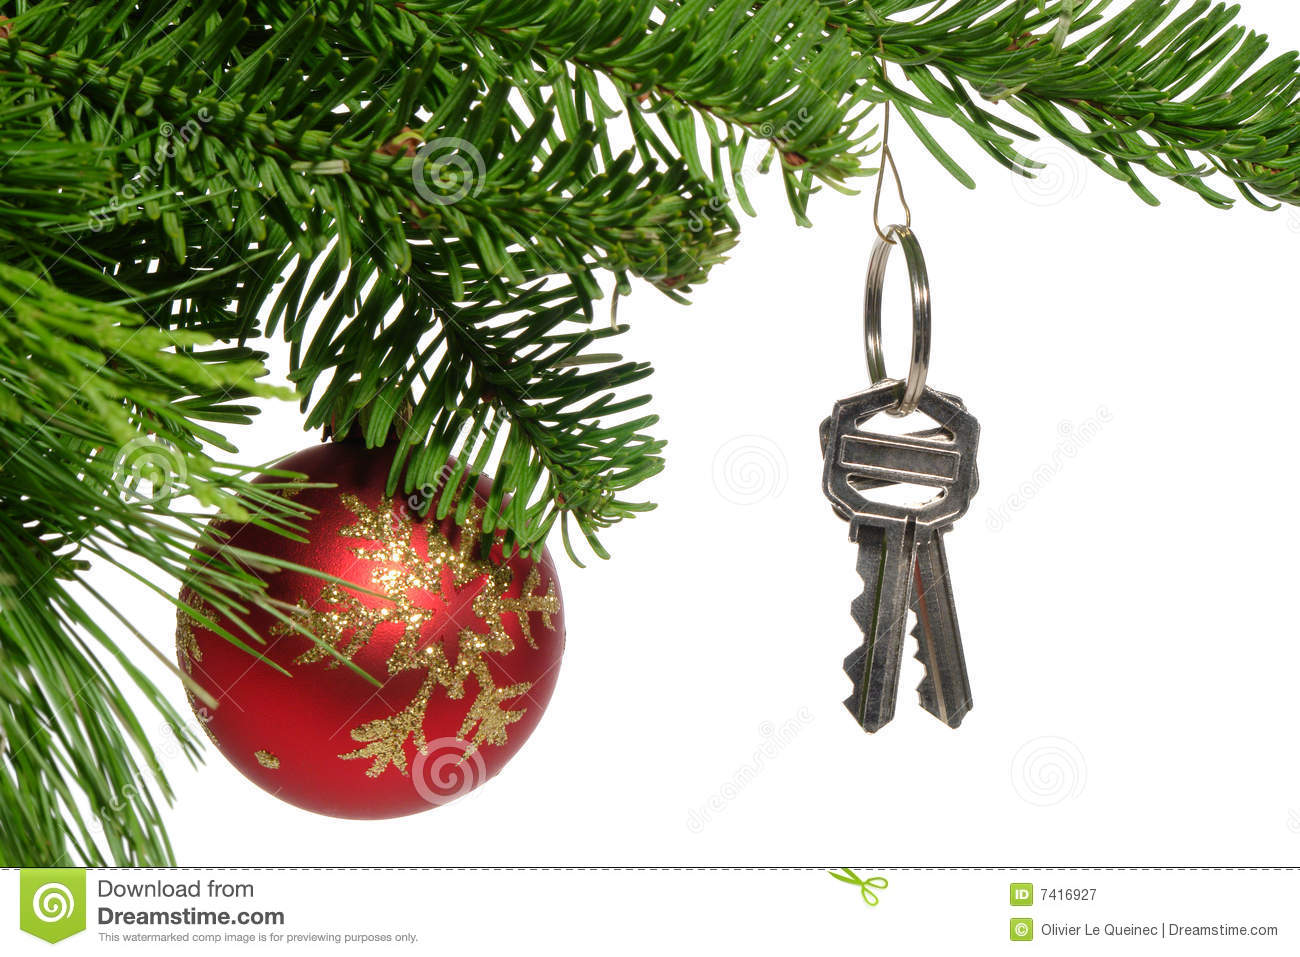 Real estate new home keys as christmas ornament royalty for Home ornaments